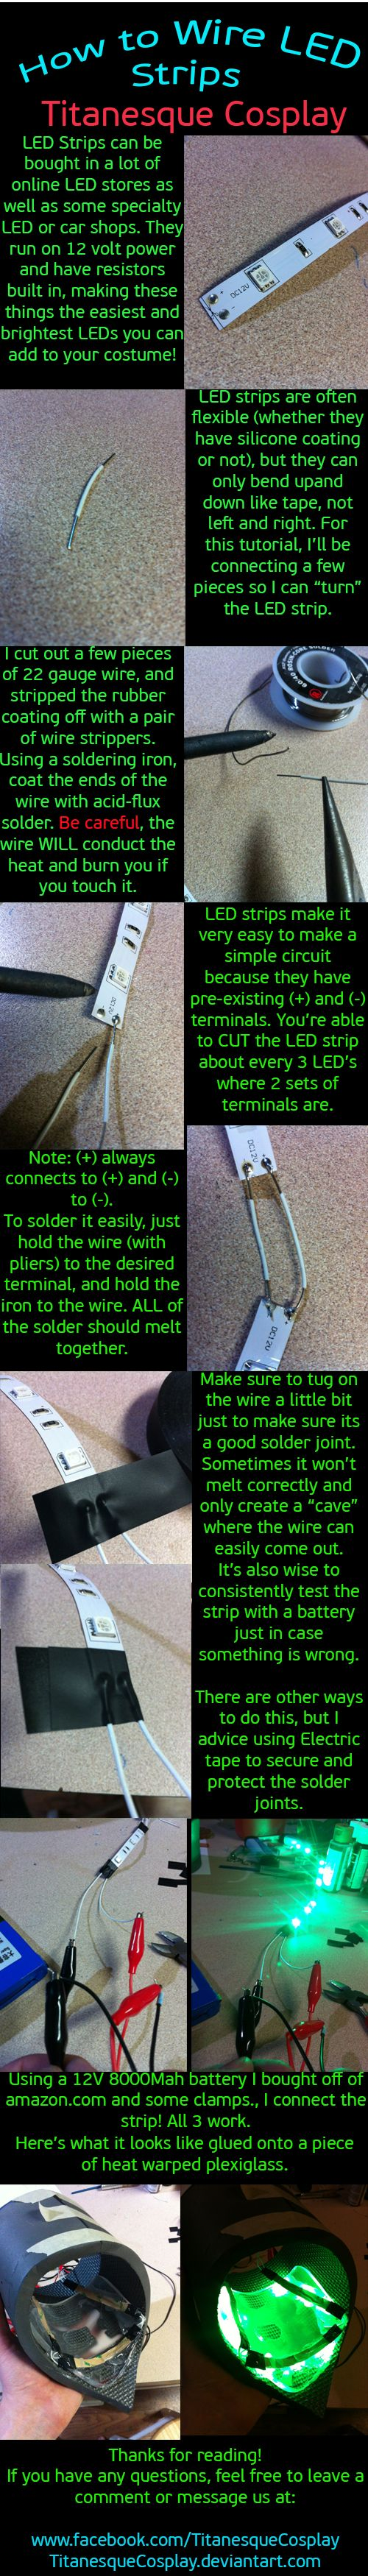 How to wire LED Strips by TitanesqueCosplay.deviantart.com on @deviantART